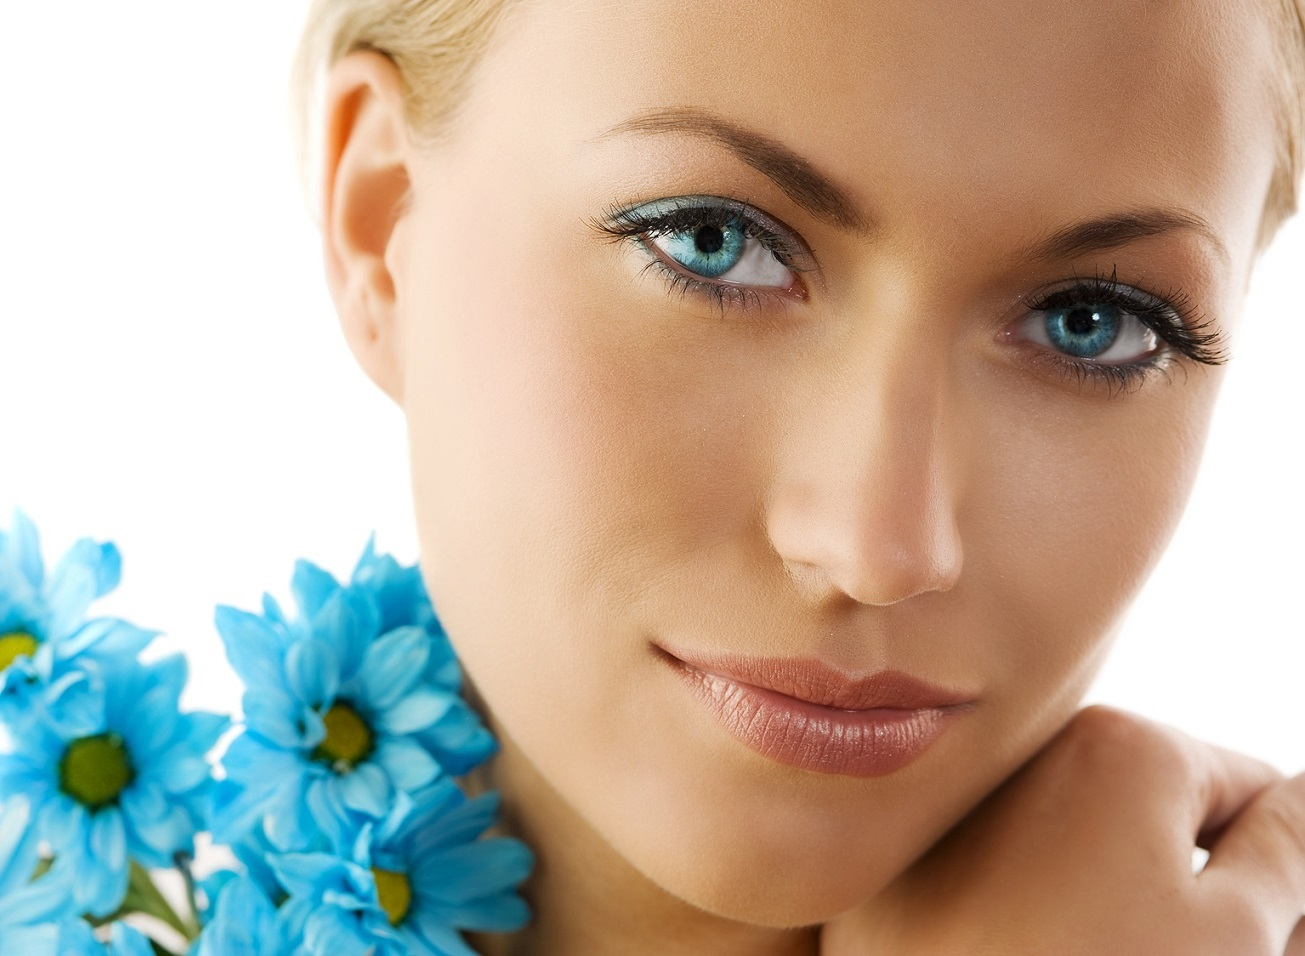 close up of a cute woman with big eyes and blue daisy